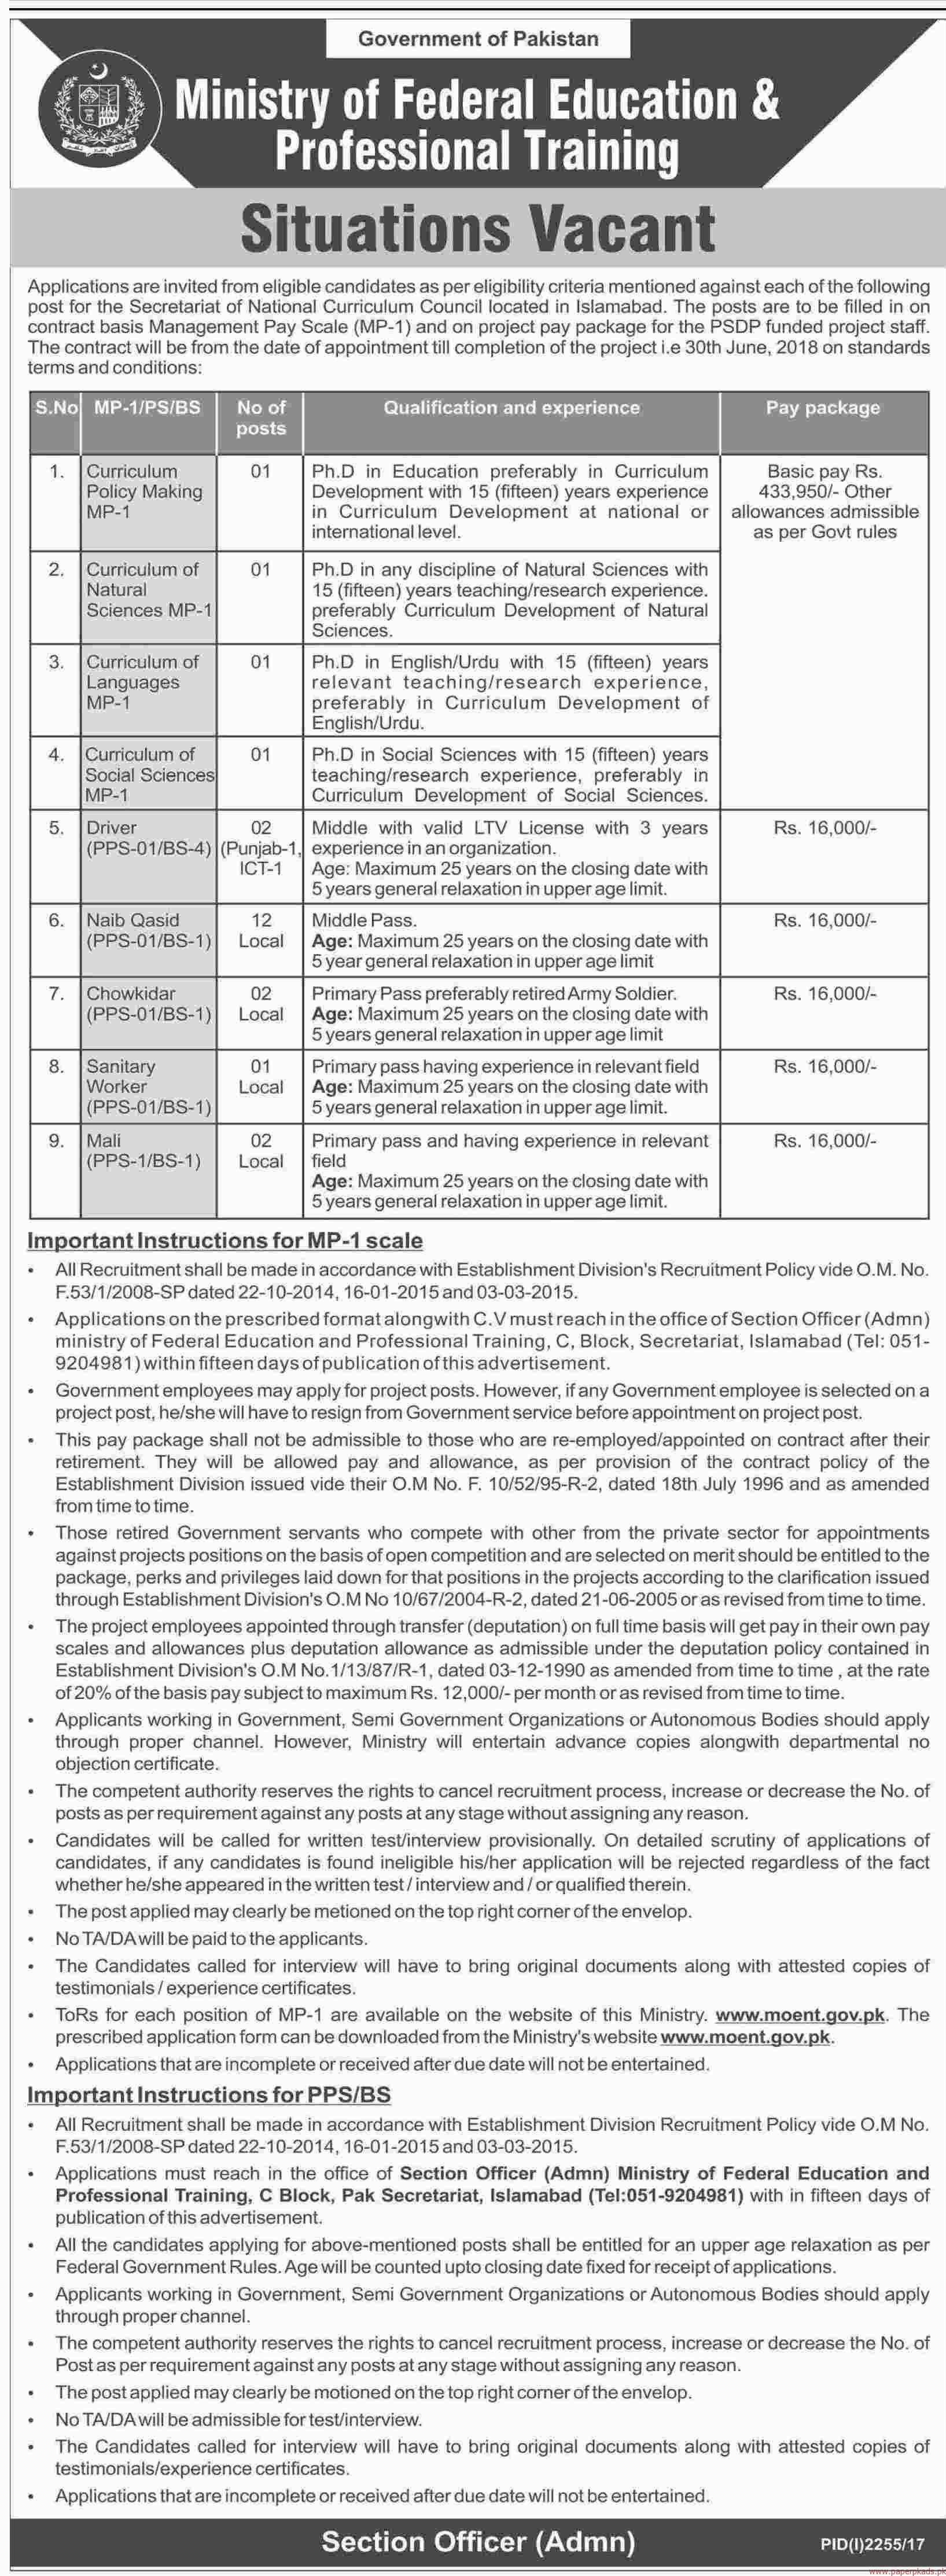 Ministry of Federal Education & Professional Training Jobs 2017 - 1